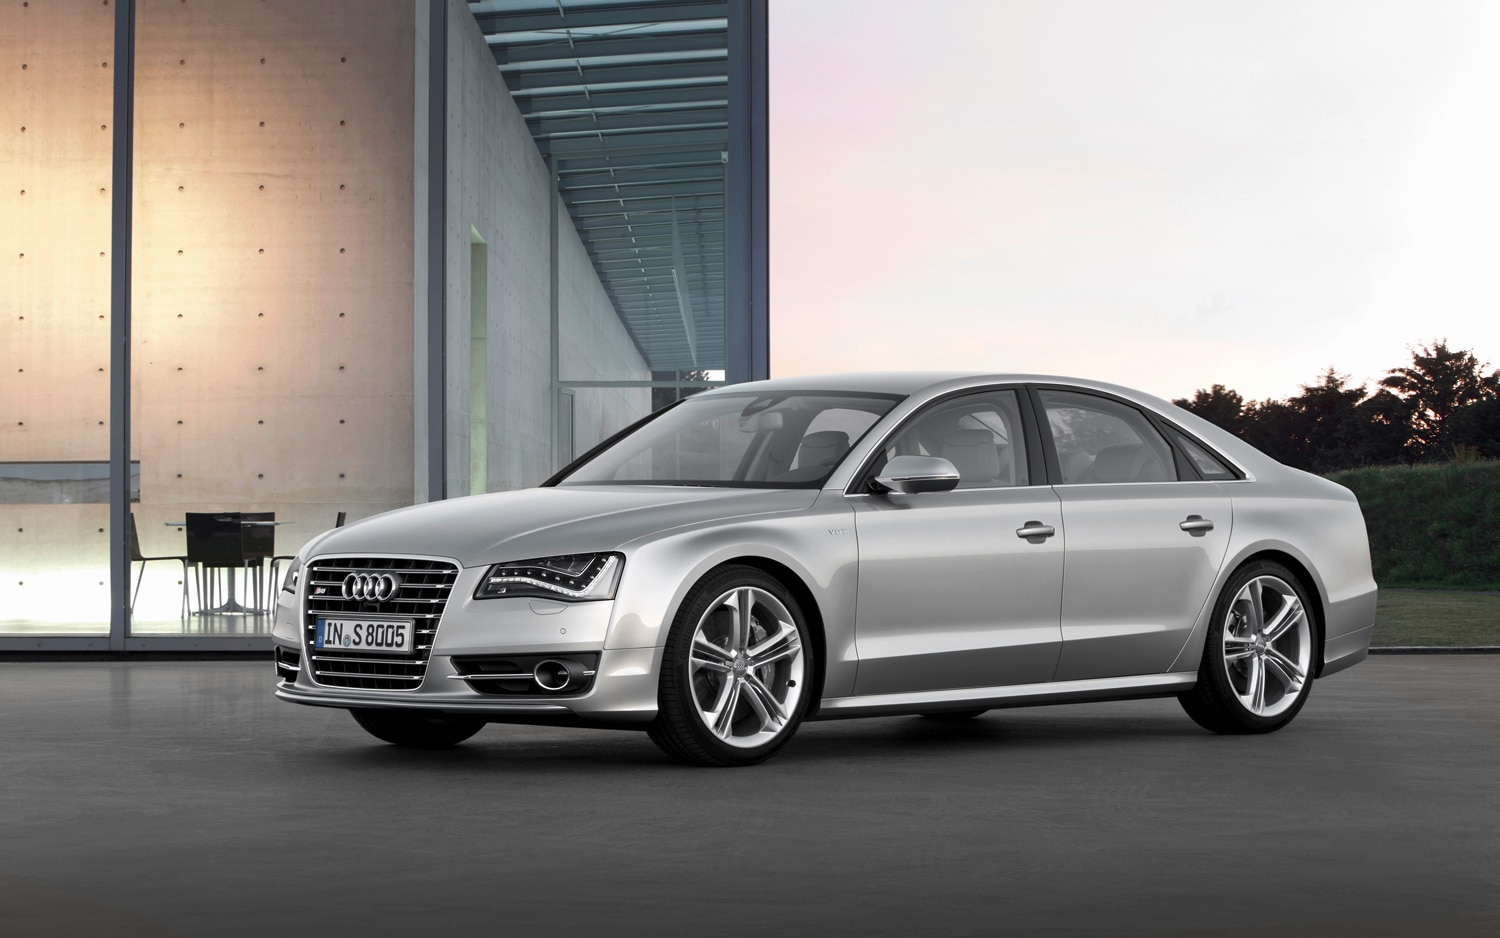 2013 Audi S8 Front Left Side View 31